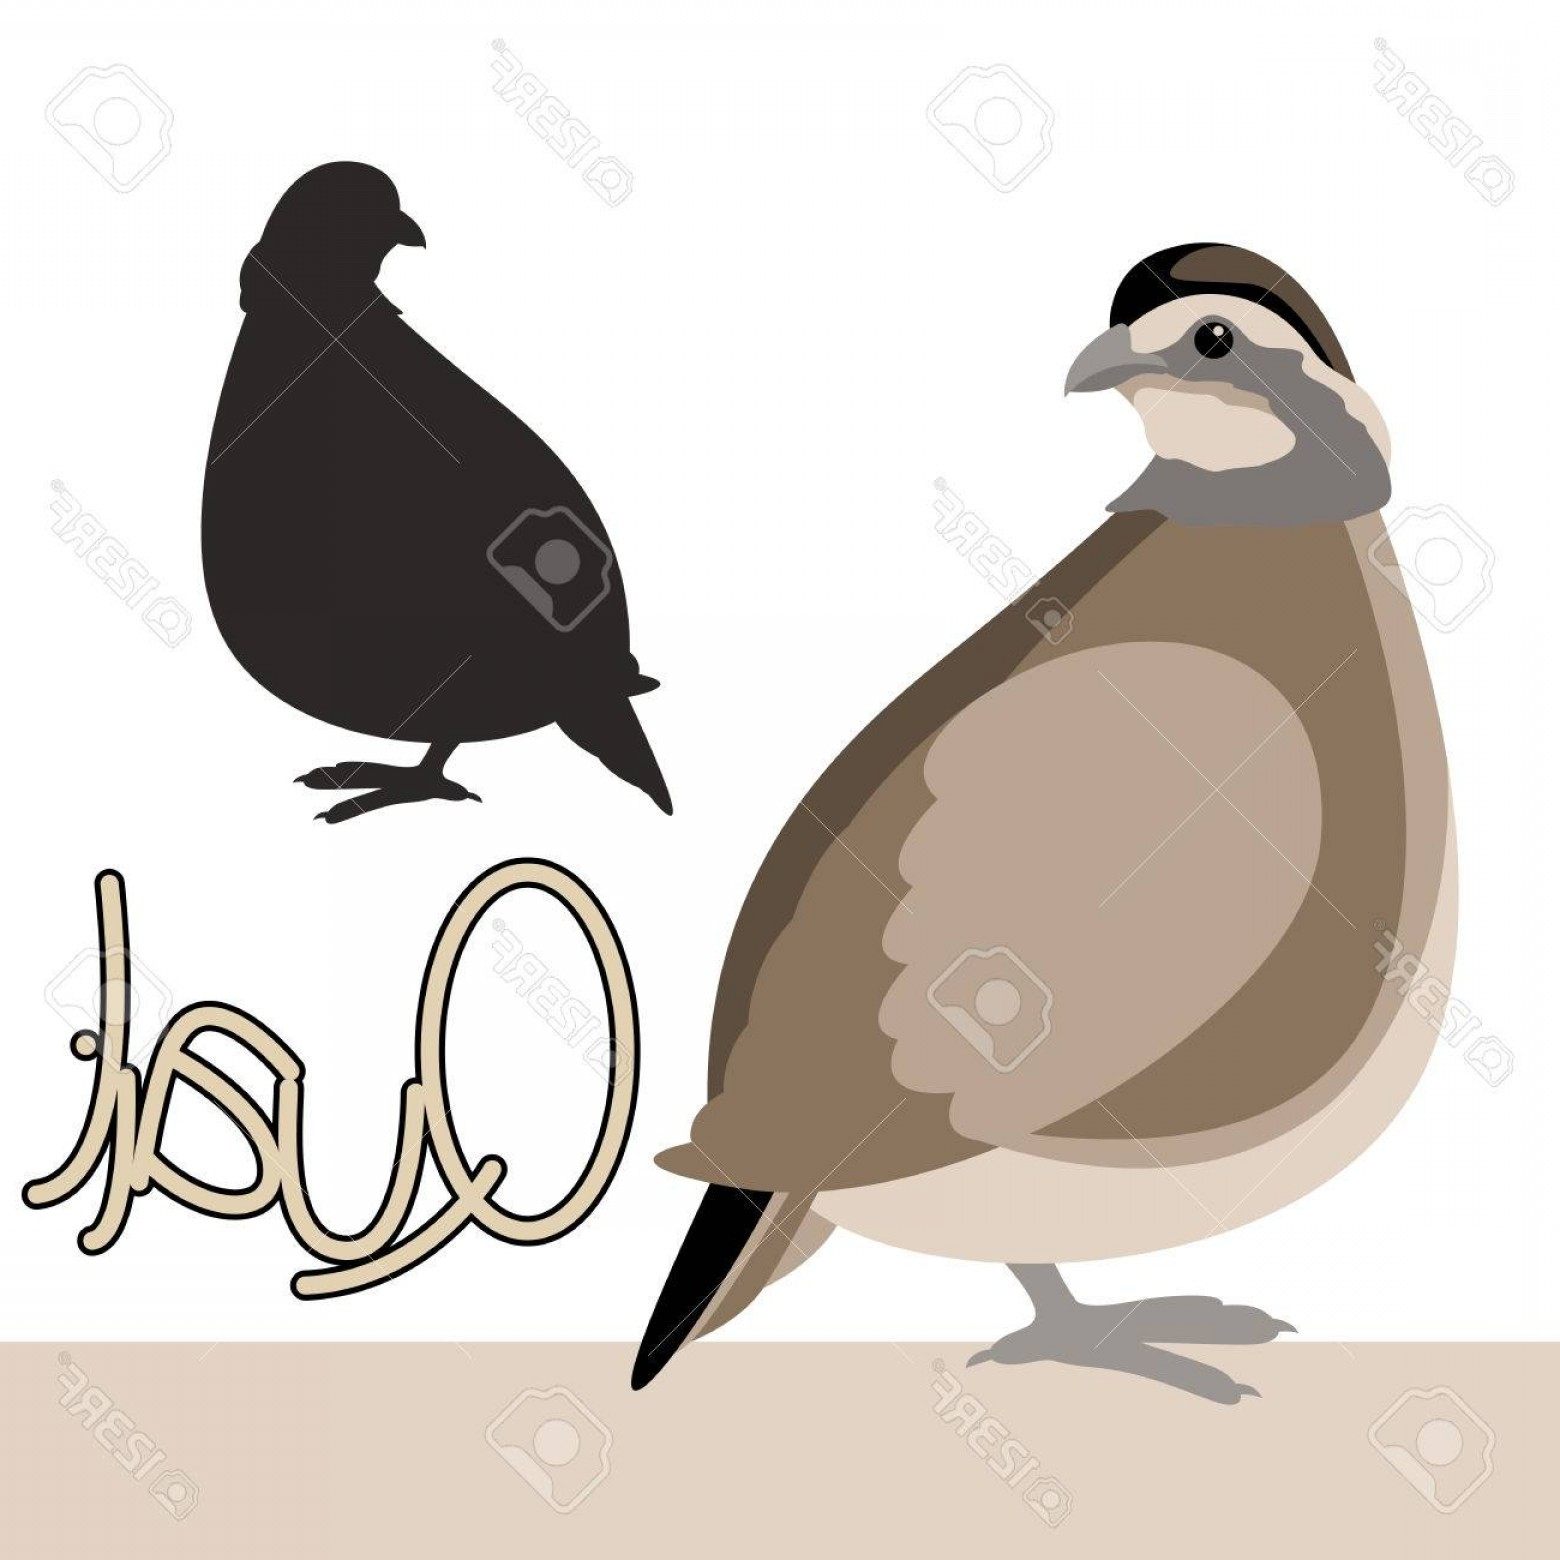 Quail Vector Art: Photostock Vector Bird Quail Vector Illustration Style Flat Black Silhouette